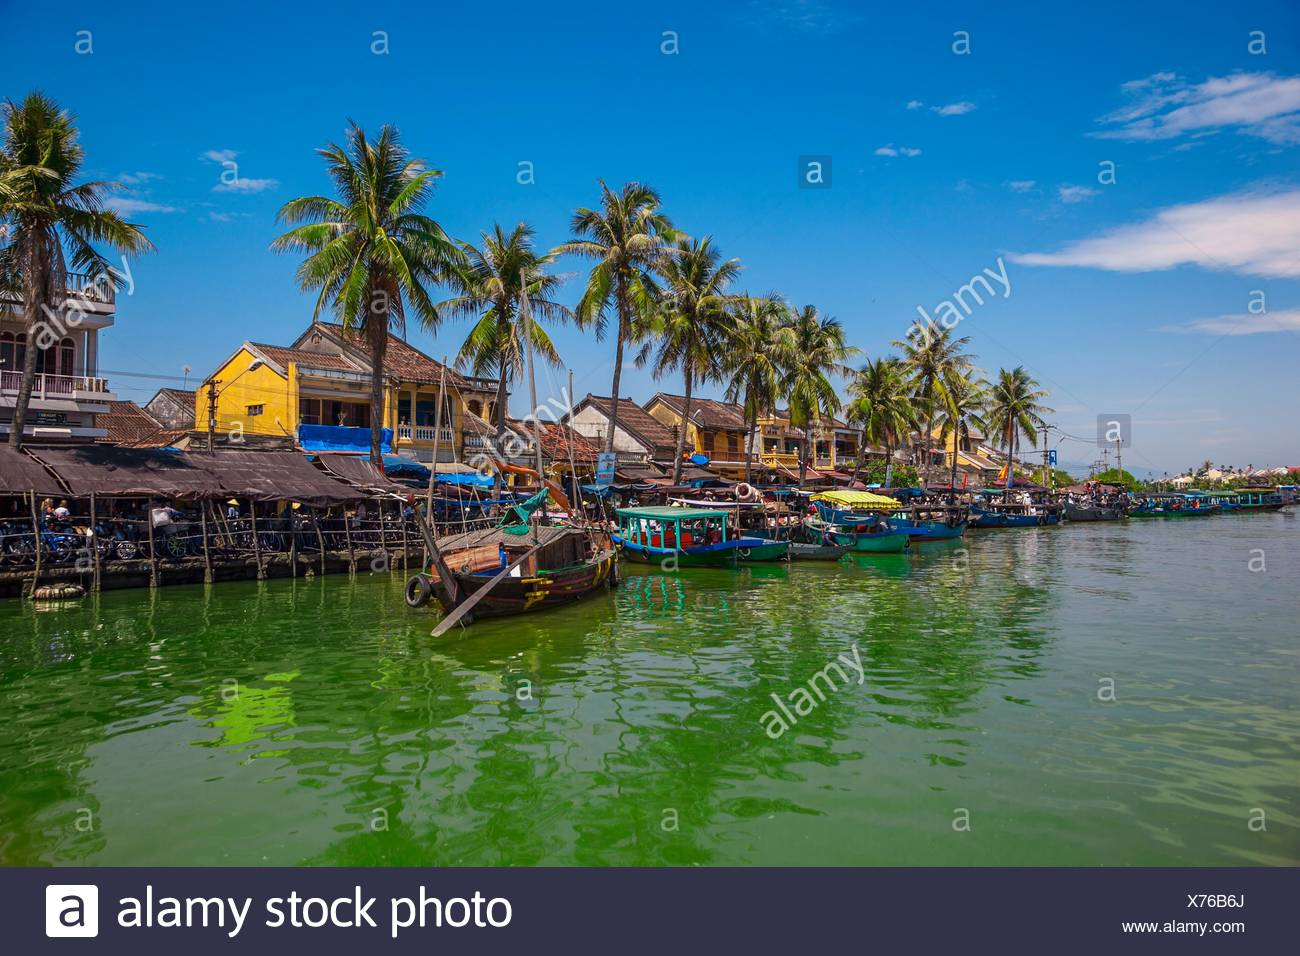 Ships in Thu Bon River in Hoi An, Centre of Vietnam, Asia - Stock Image